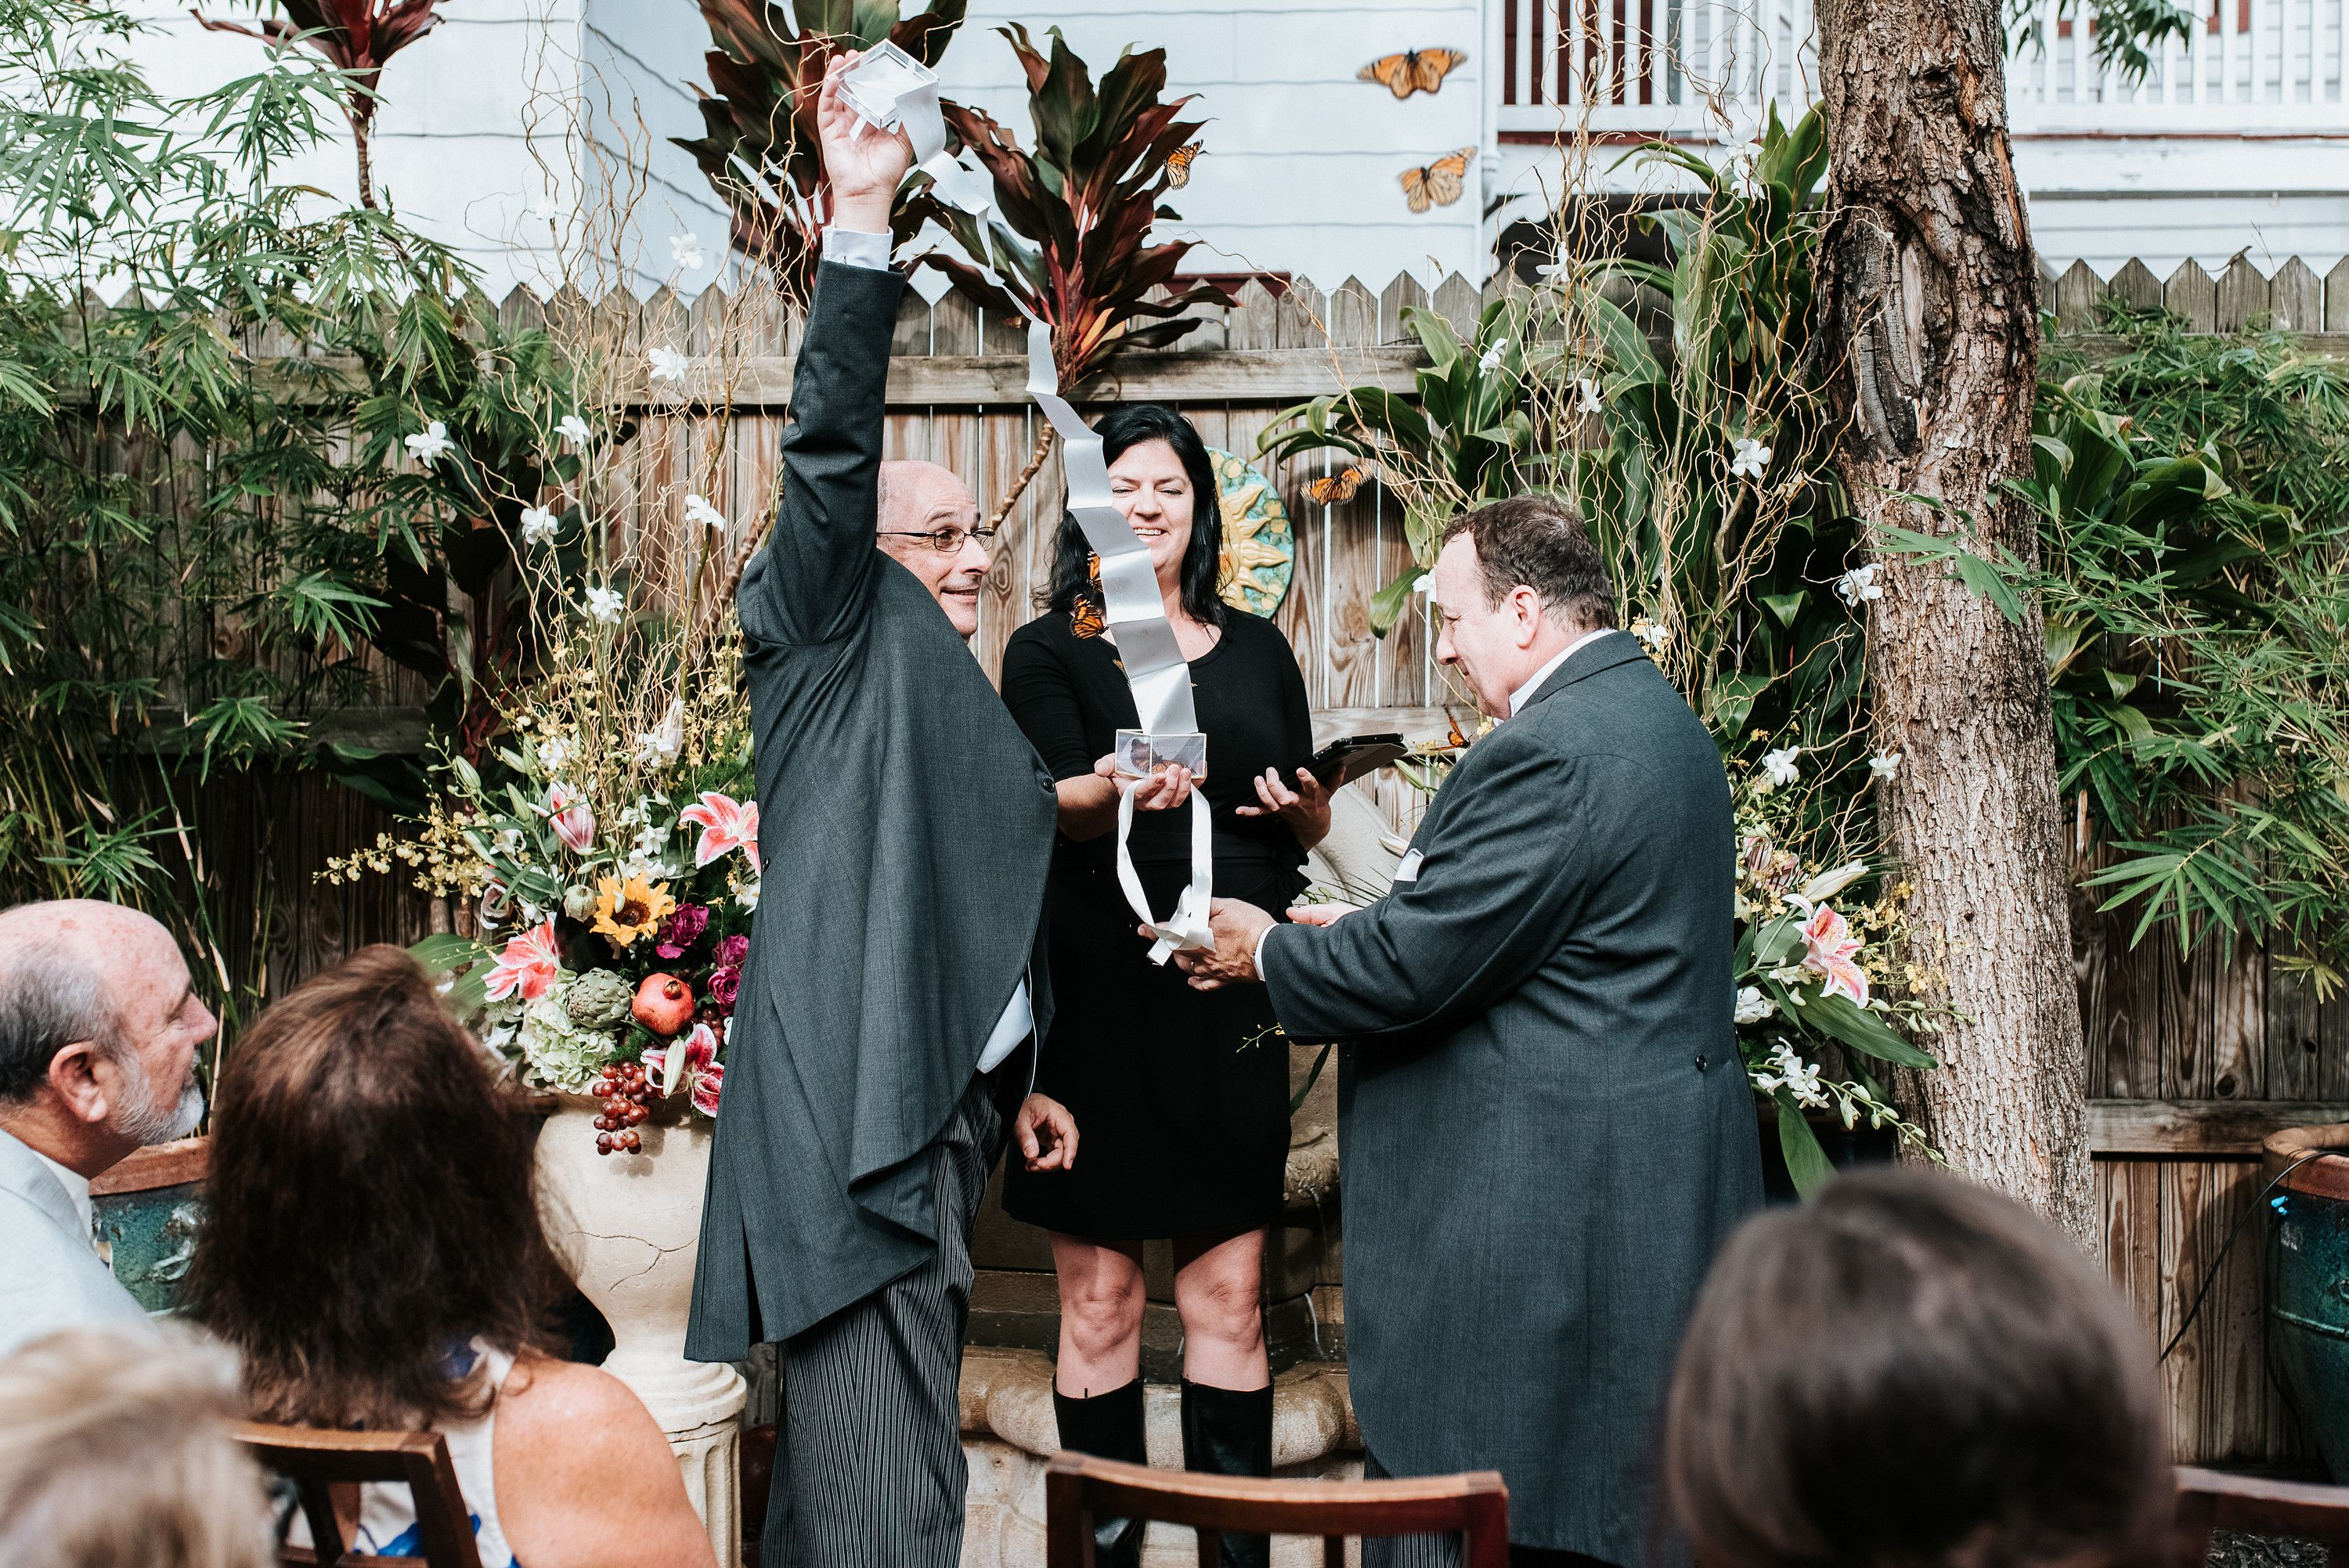 Intimate dinner party wedding with butterfly release